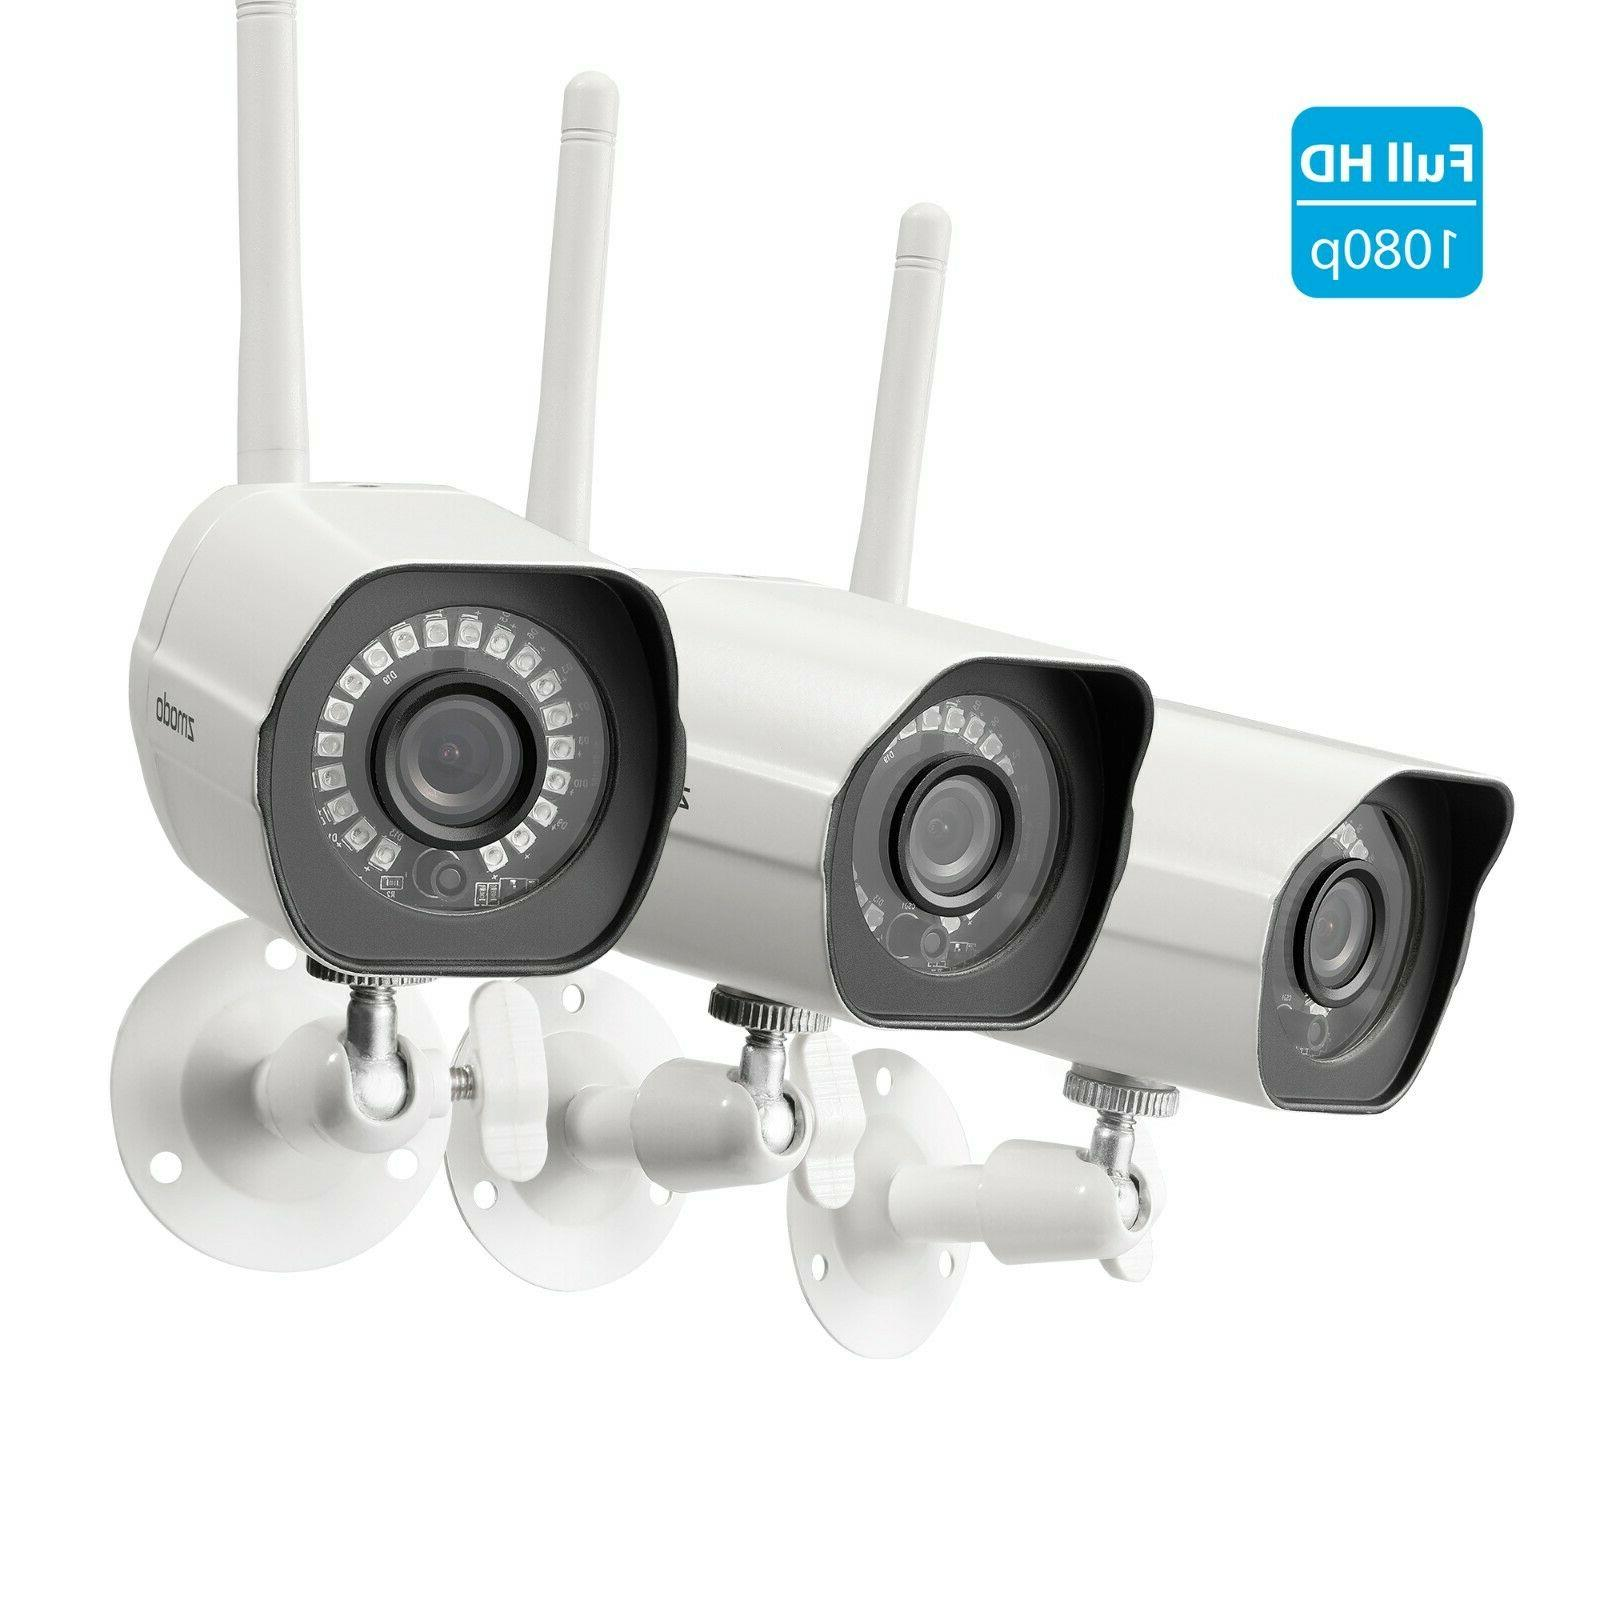 1080p security ip camera system 3 pack